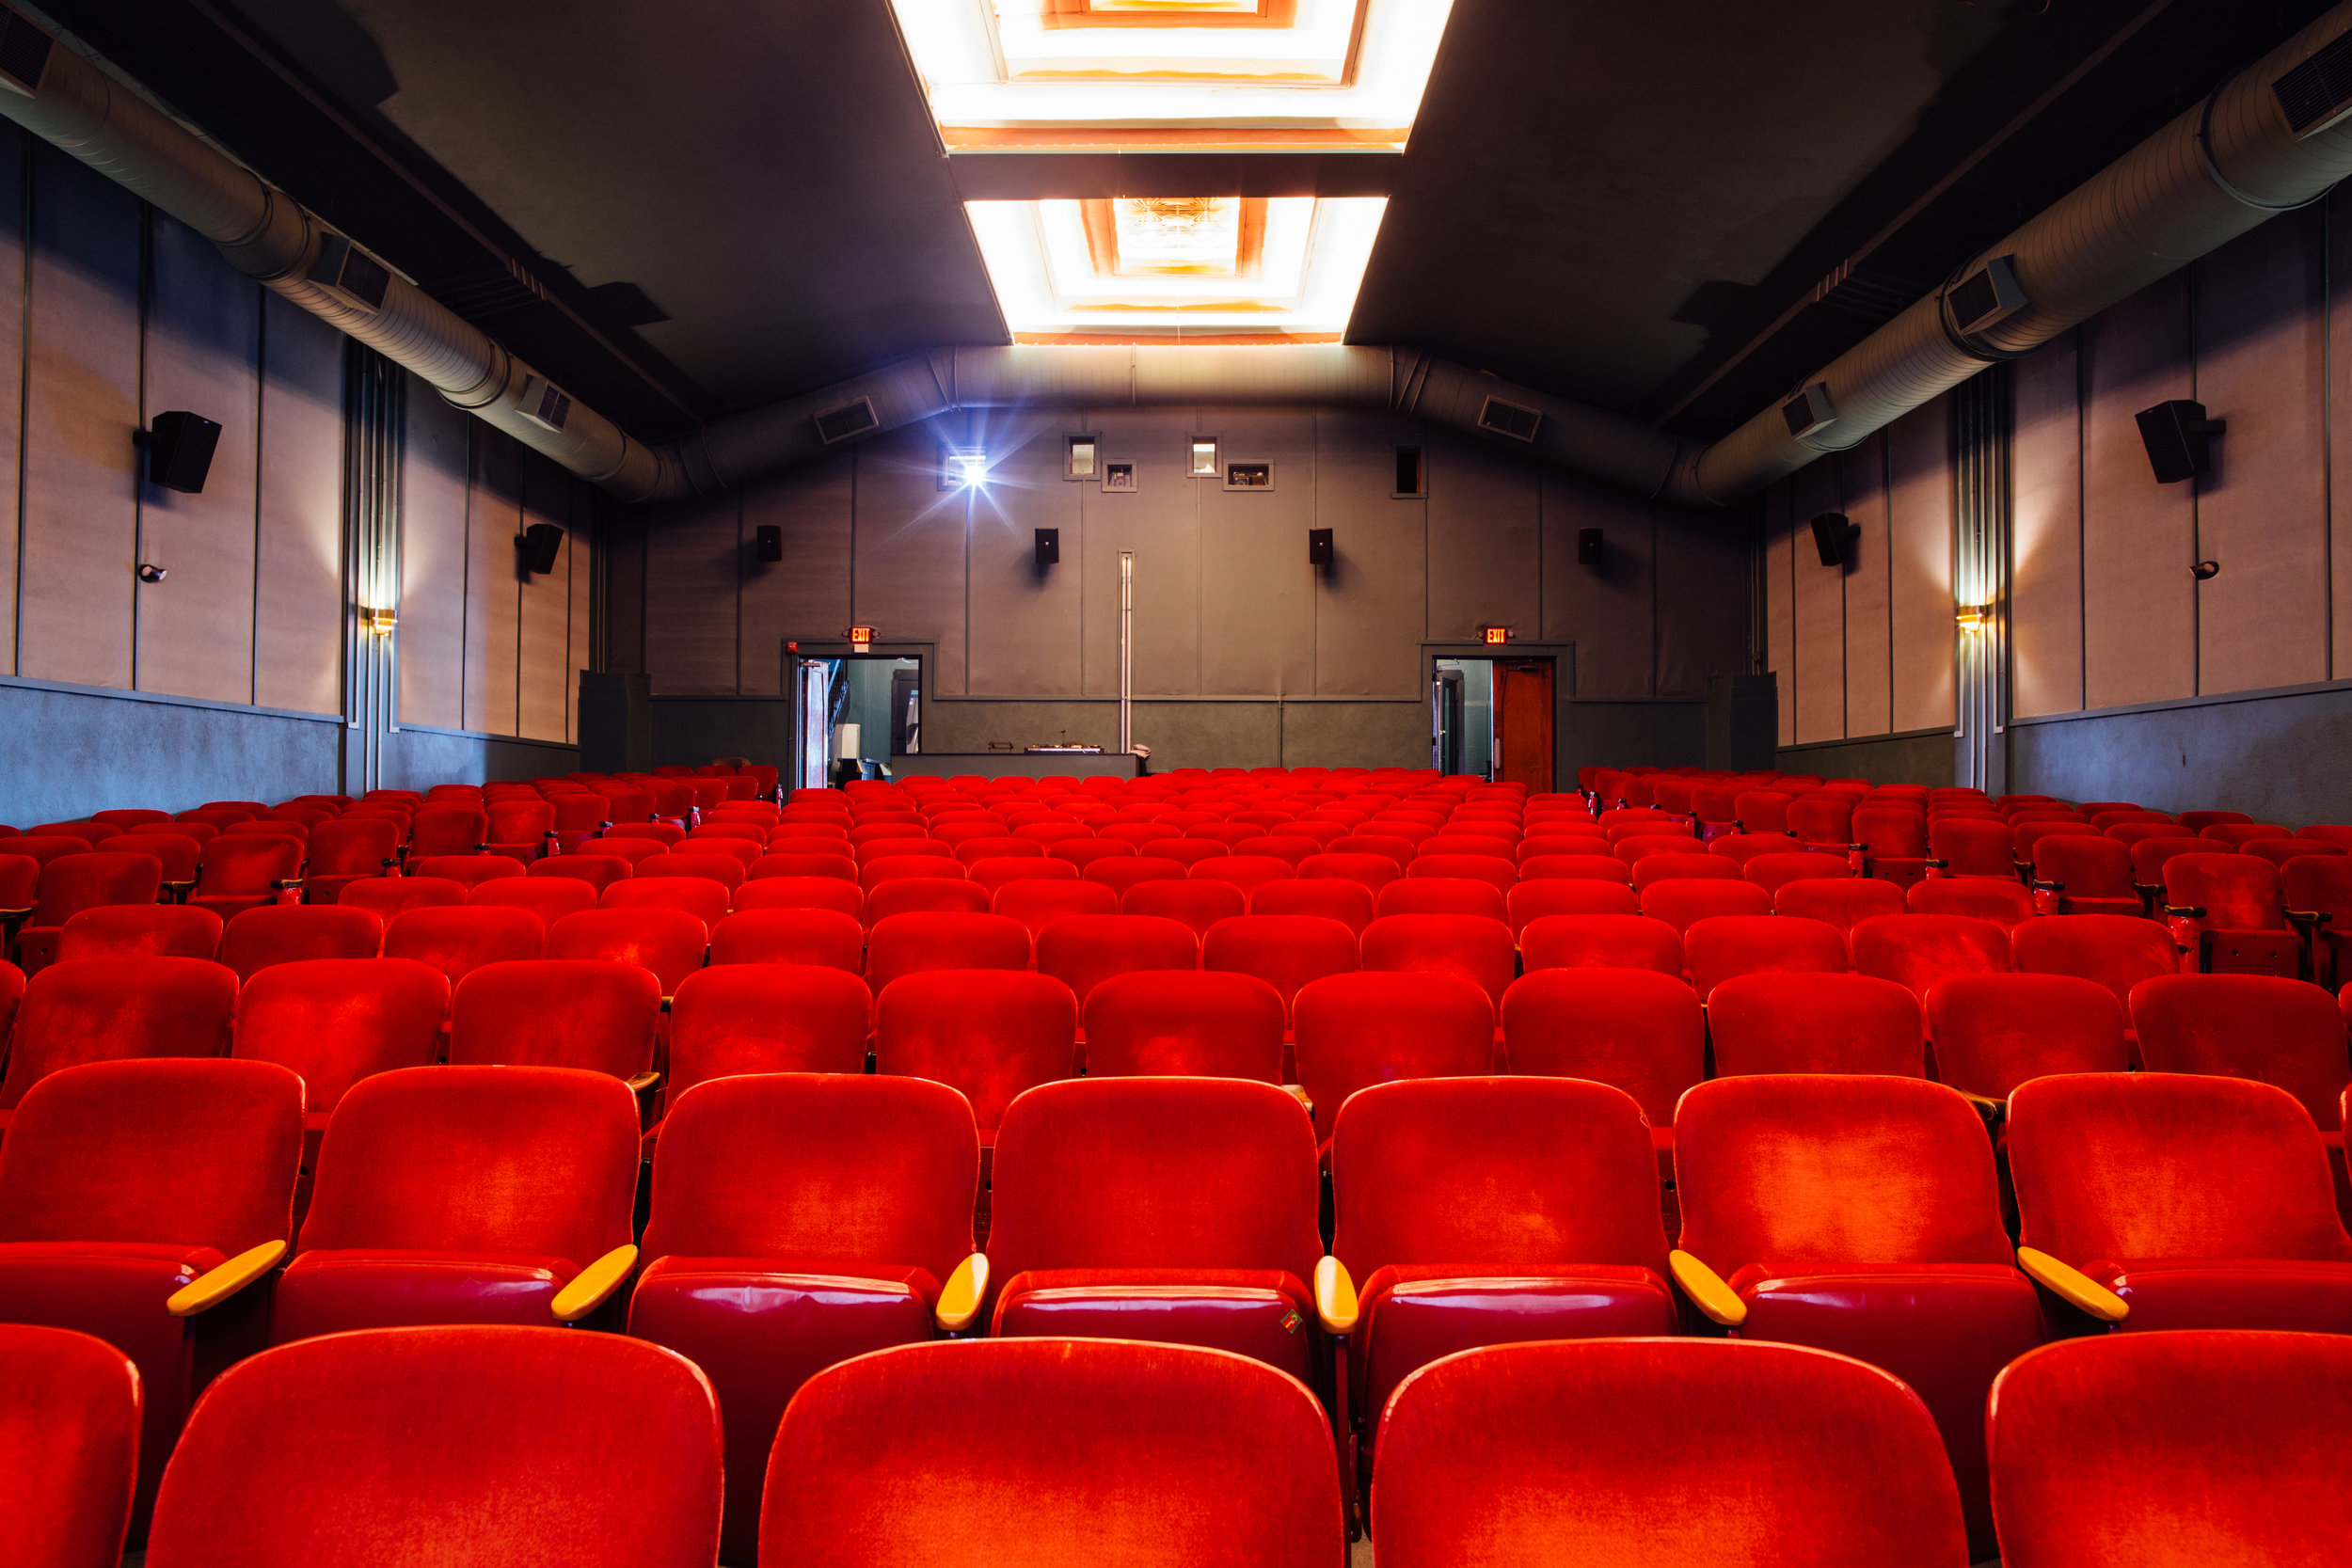 Private Screenings - In our historic theater